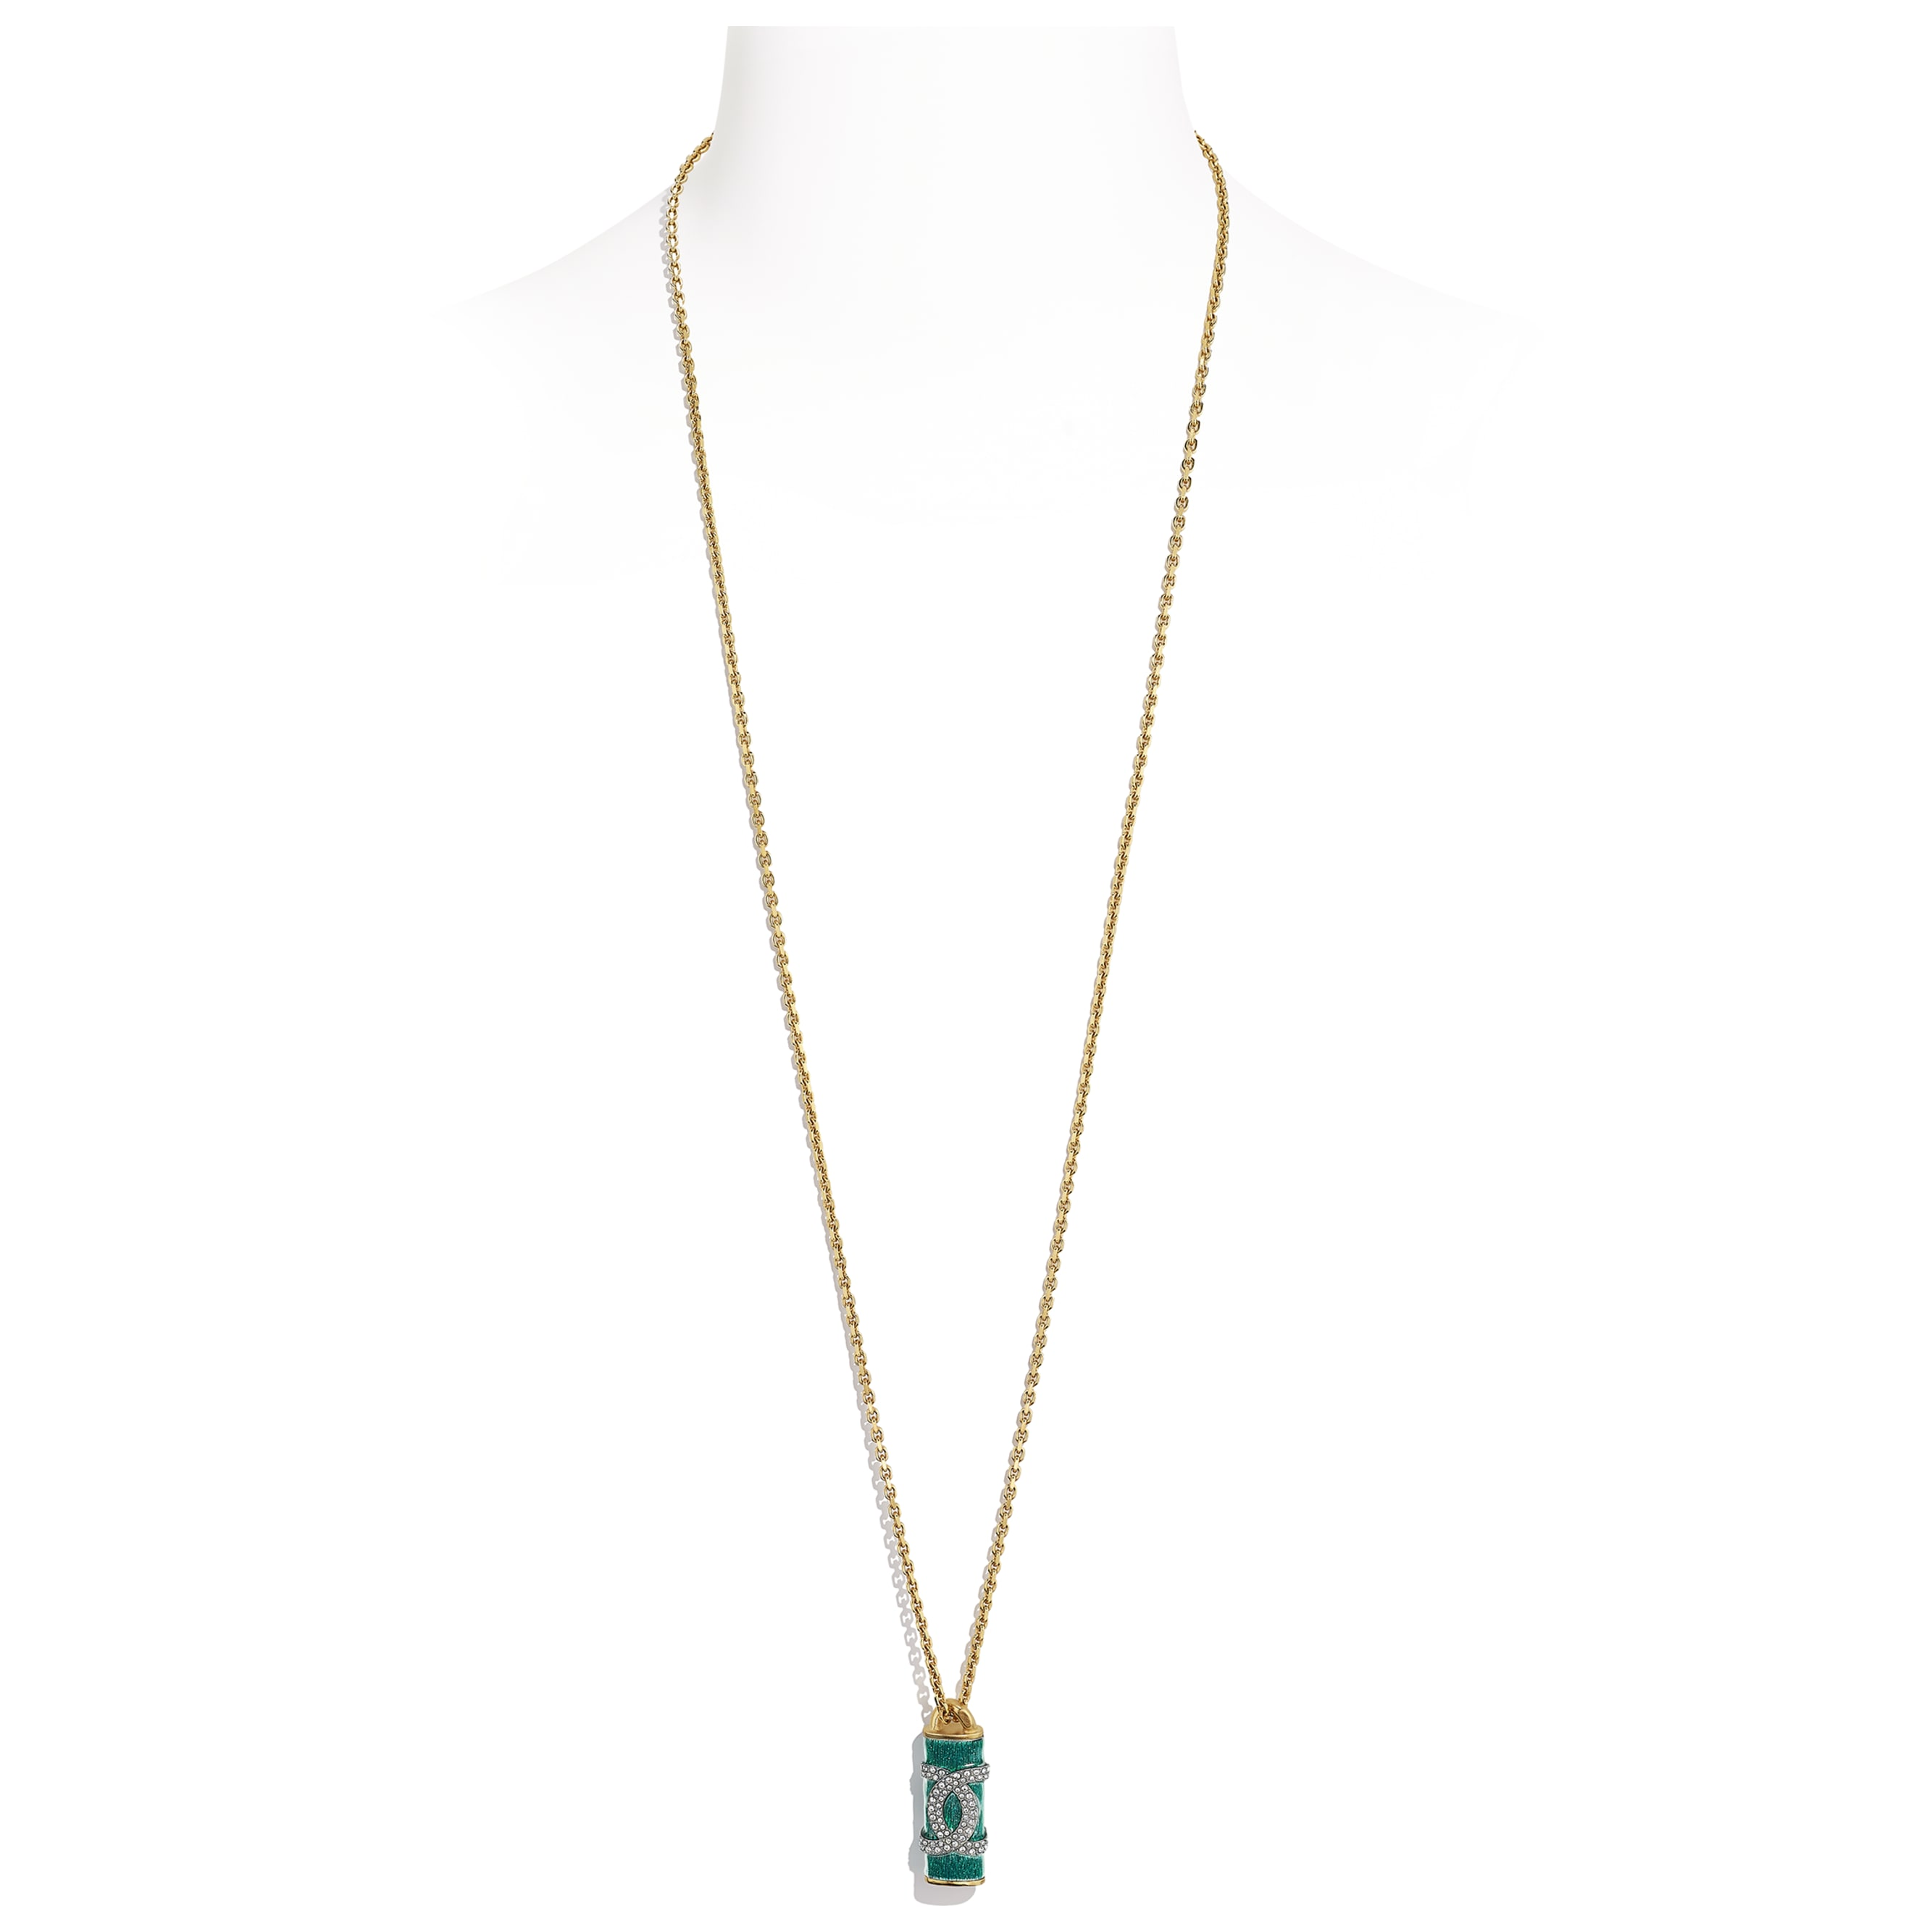 Necklace - Gold, Green & Crystal - Metal & Diamantés - CHANEL - Default view - see standard sized version